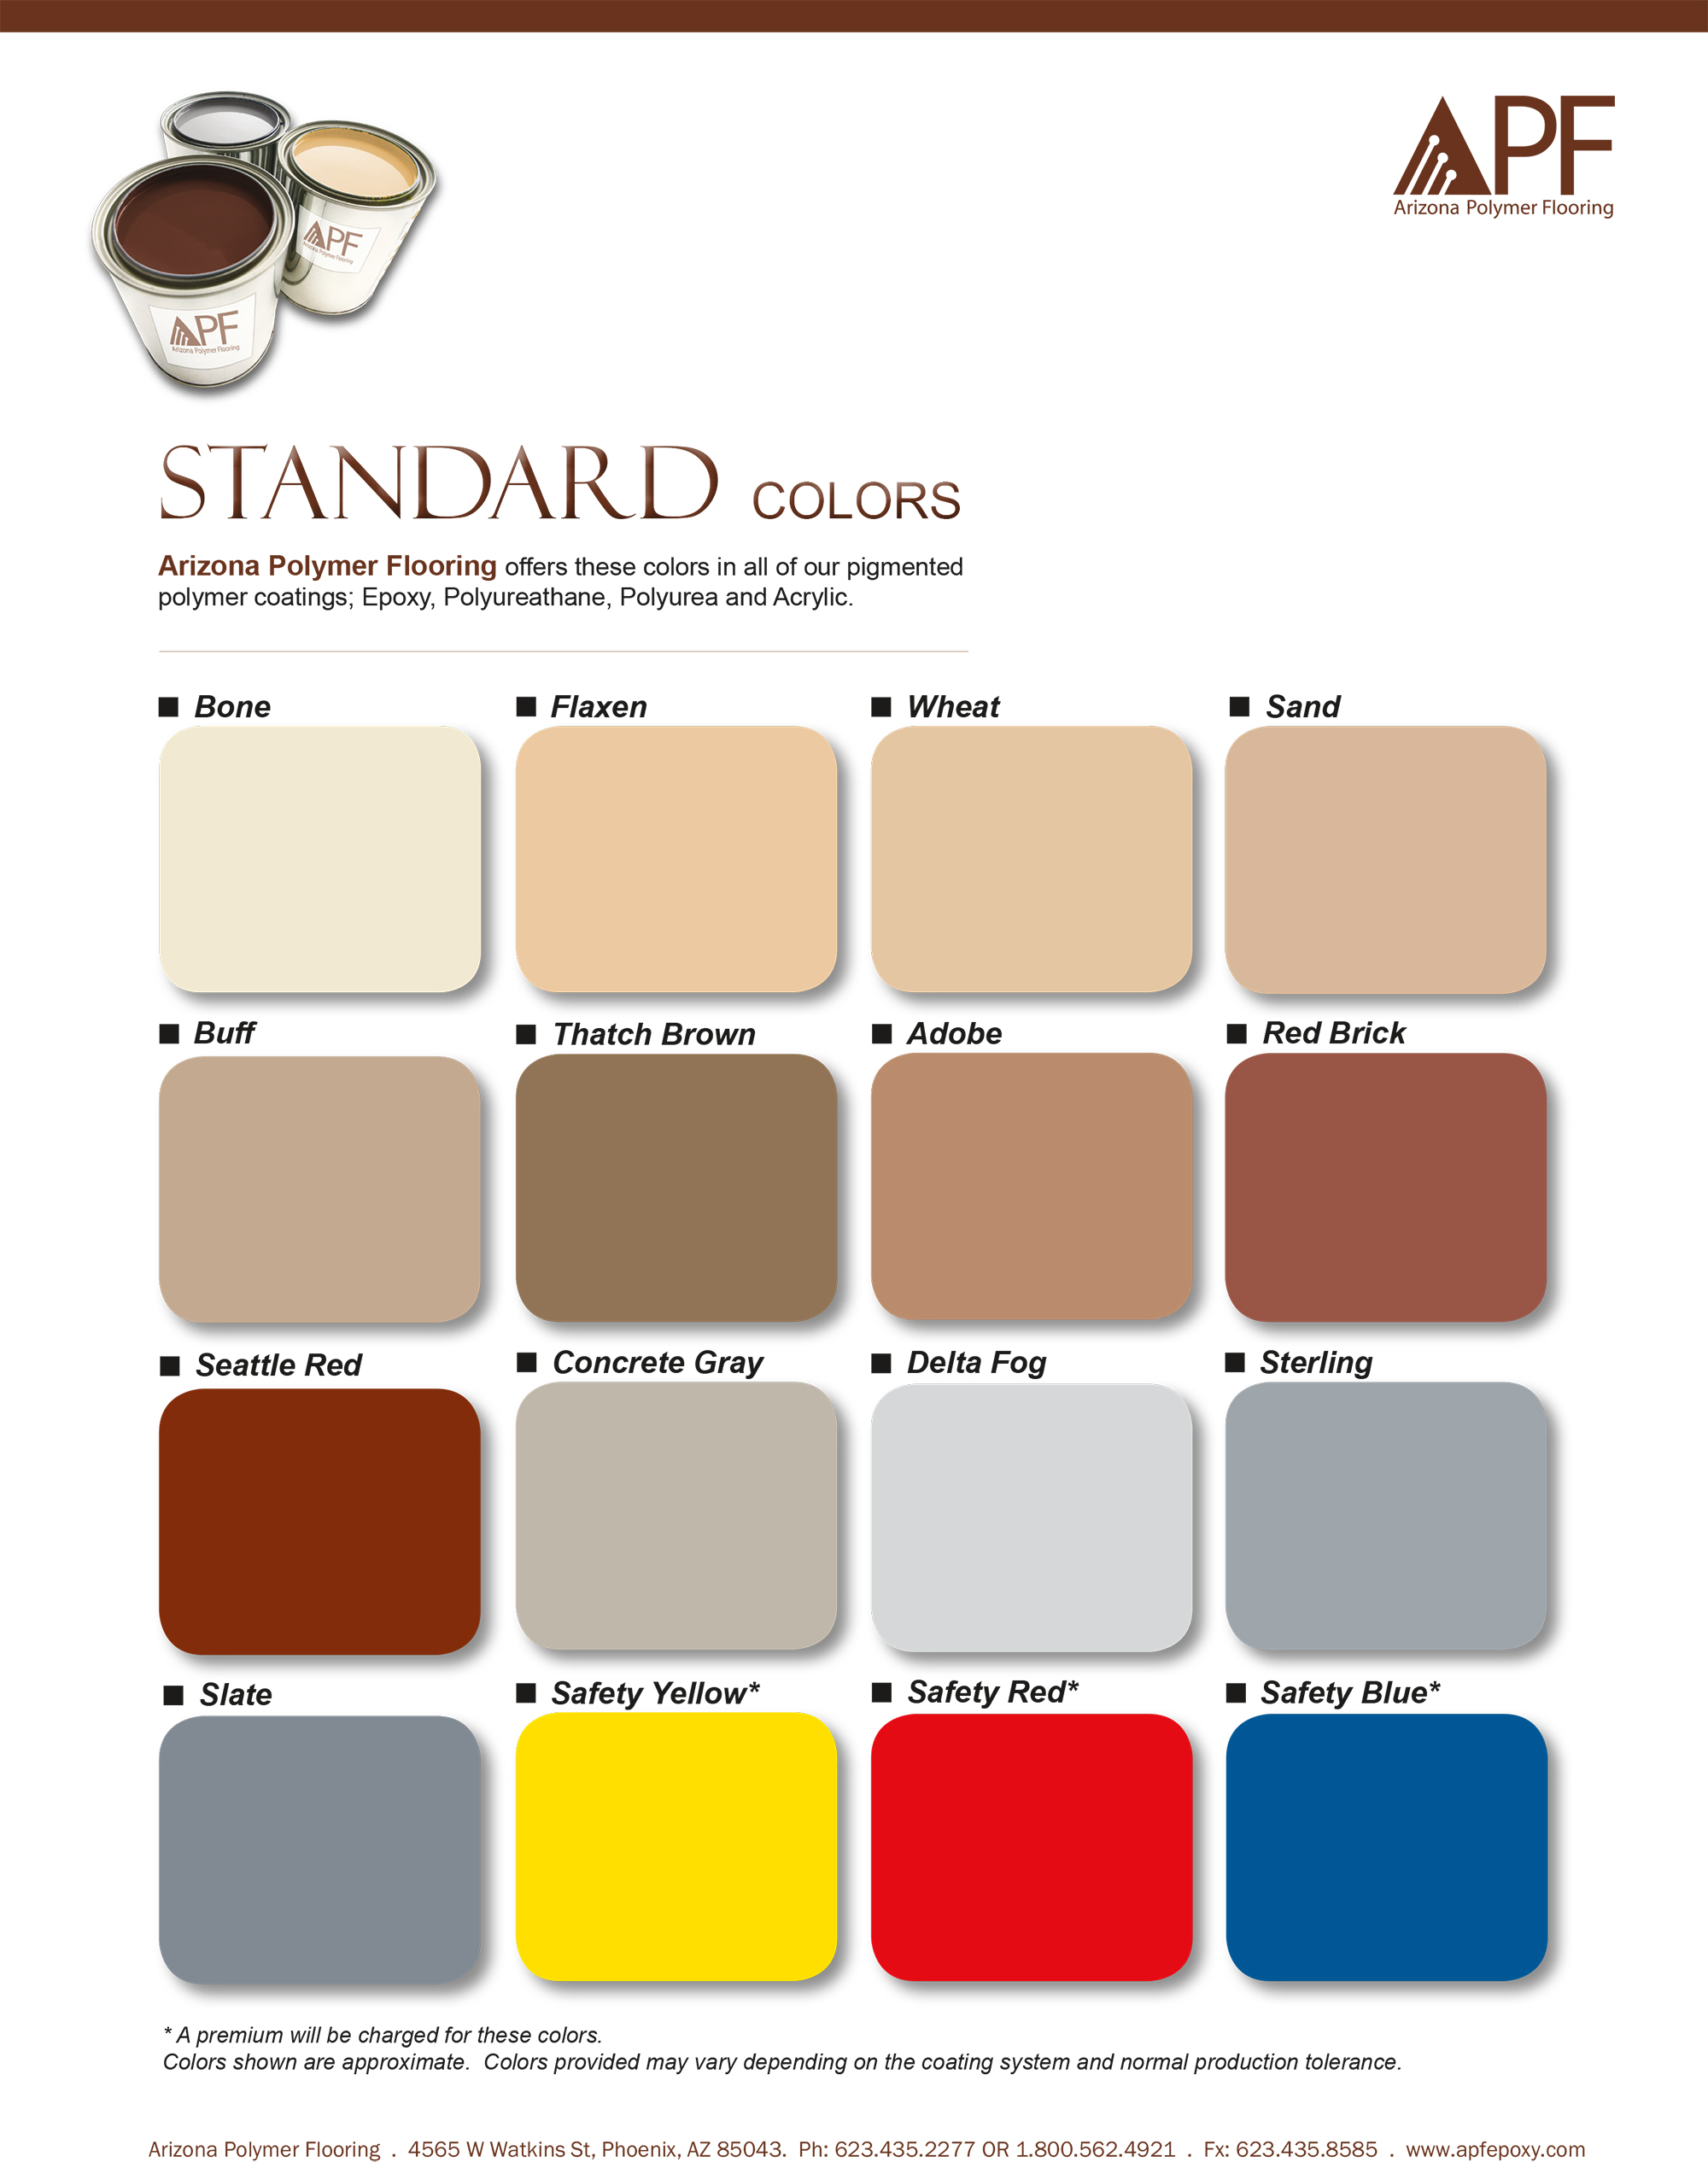 apf-standard-colors